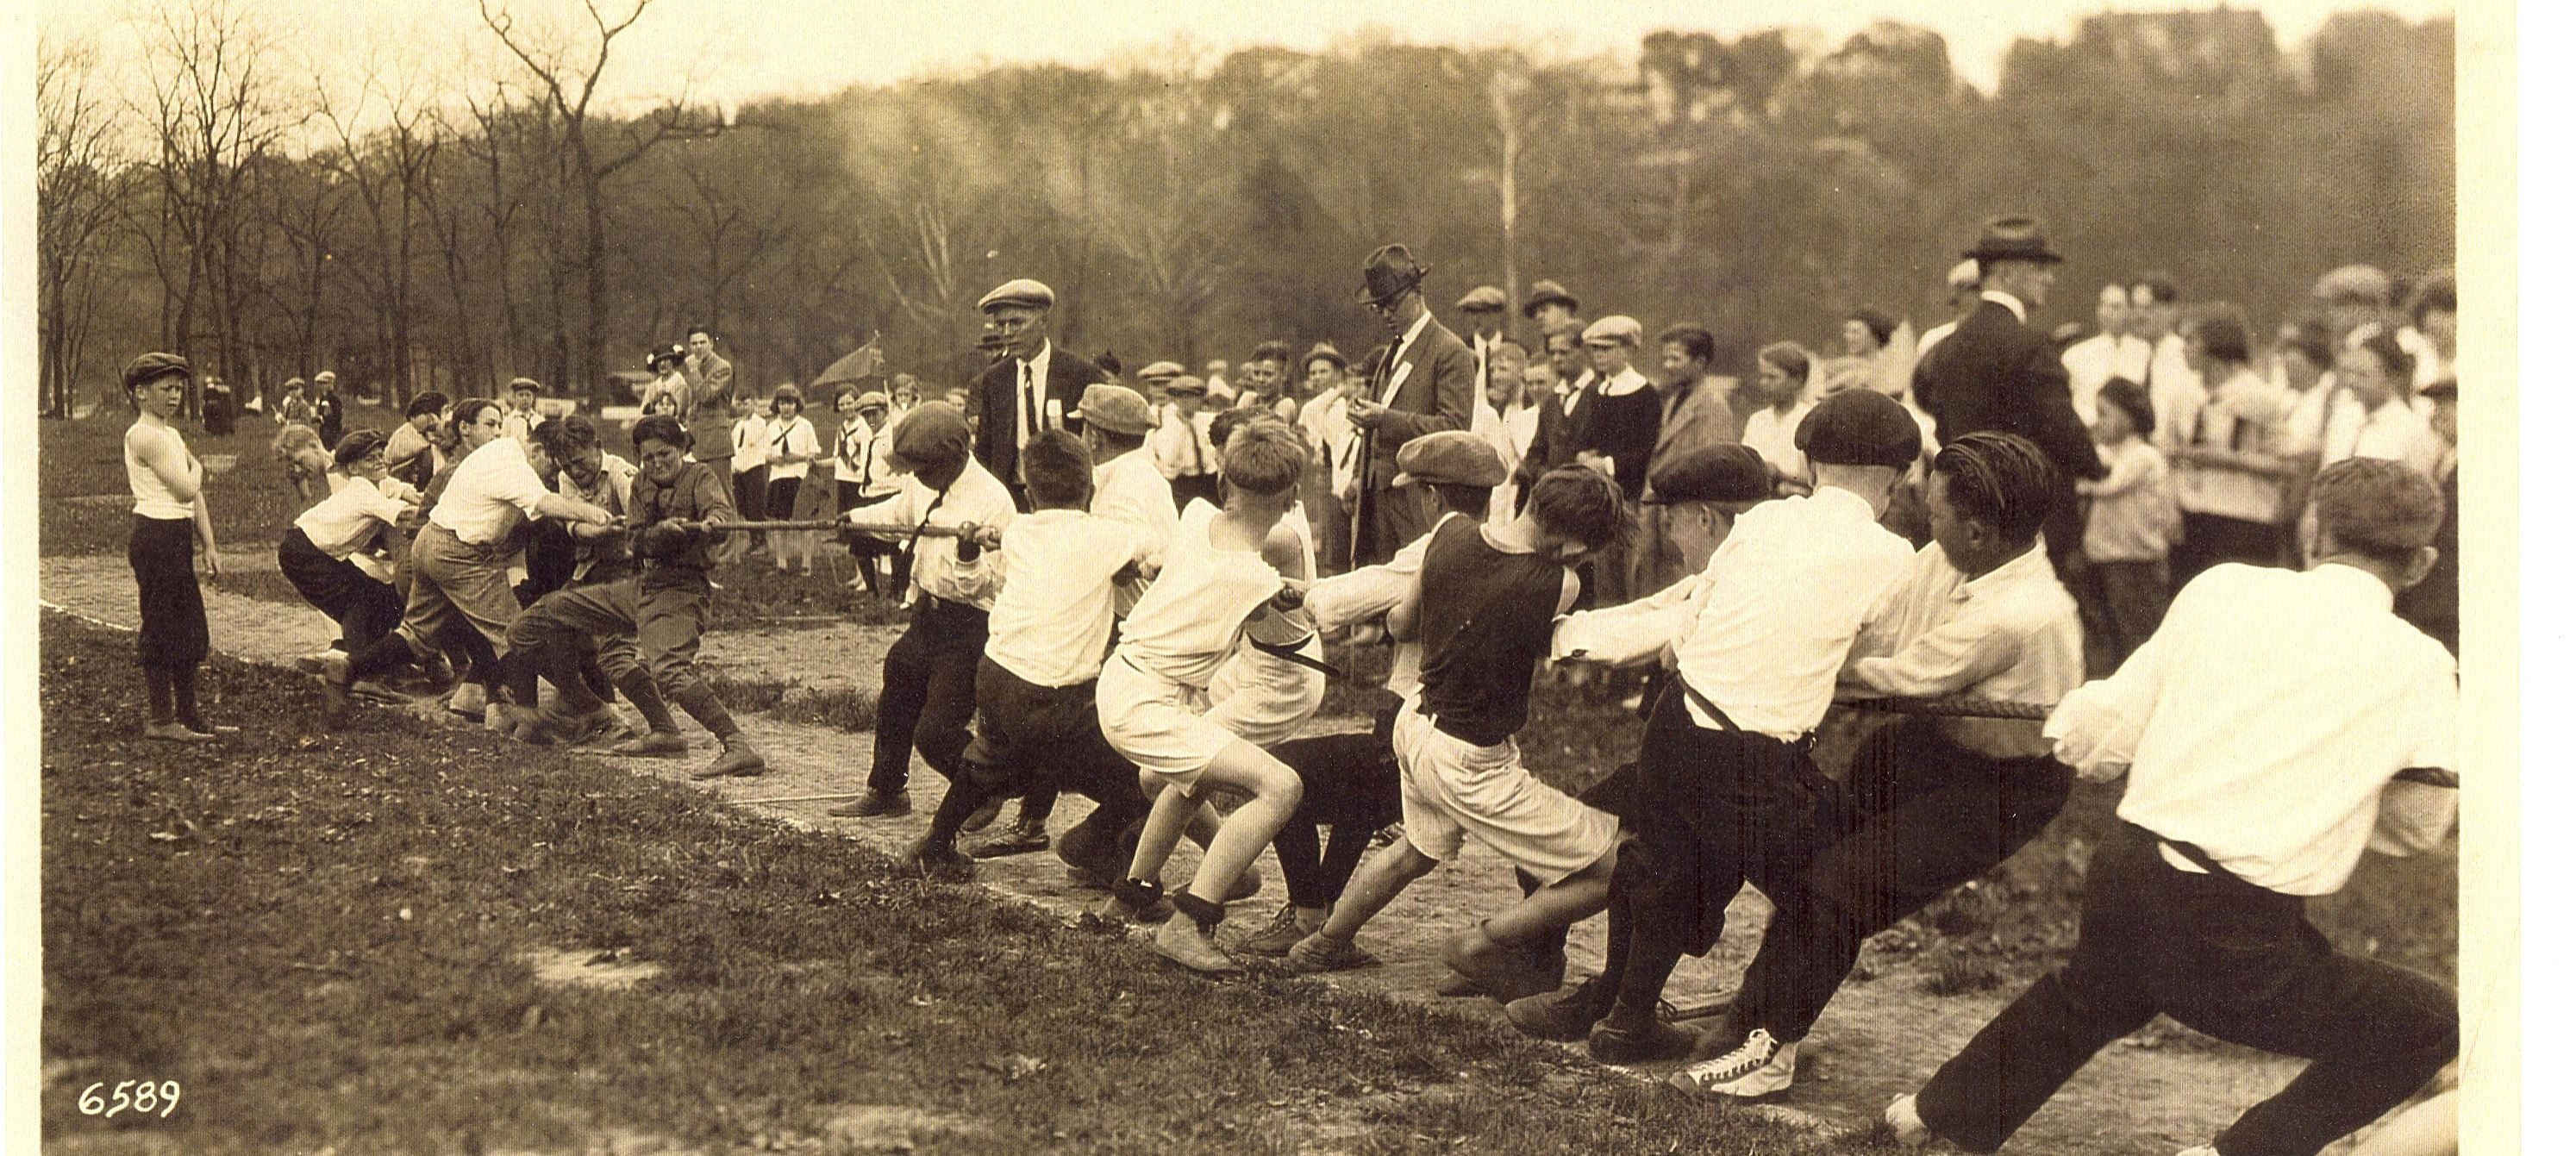 Historic photo of tug of war game from Pembroke Hill archives